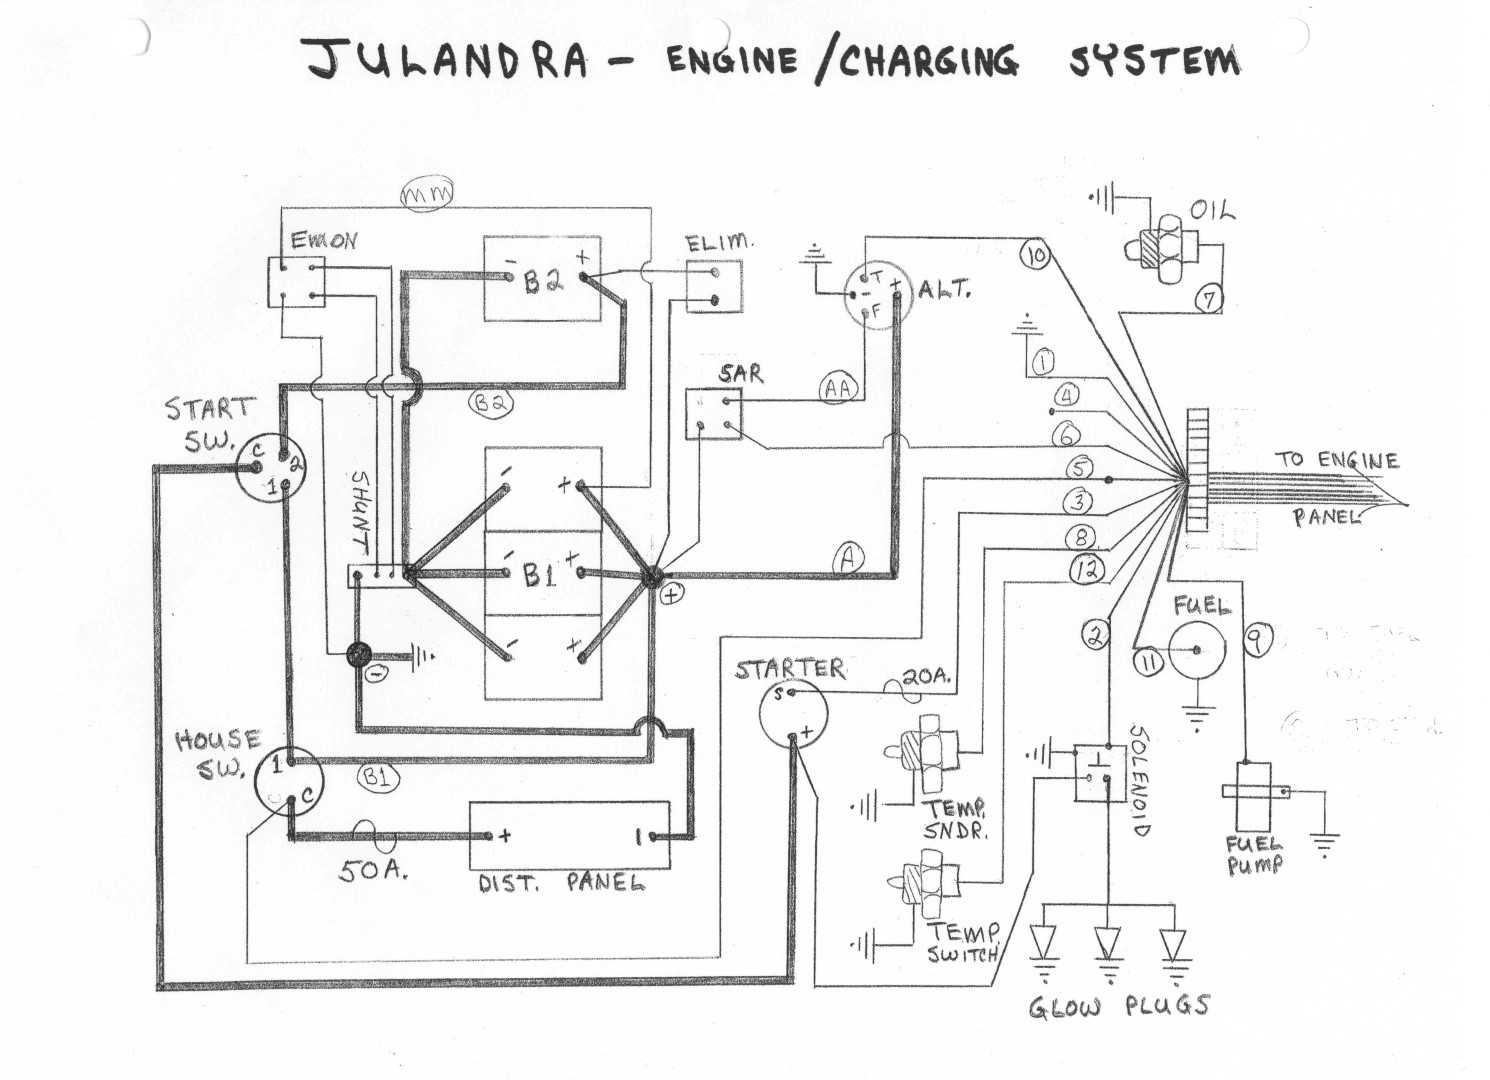 Wiring Diagram For Catalina 25 Sailboat Sailboat Parts